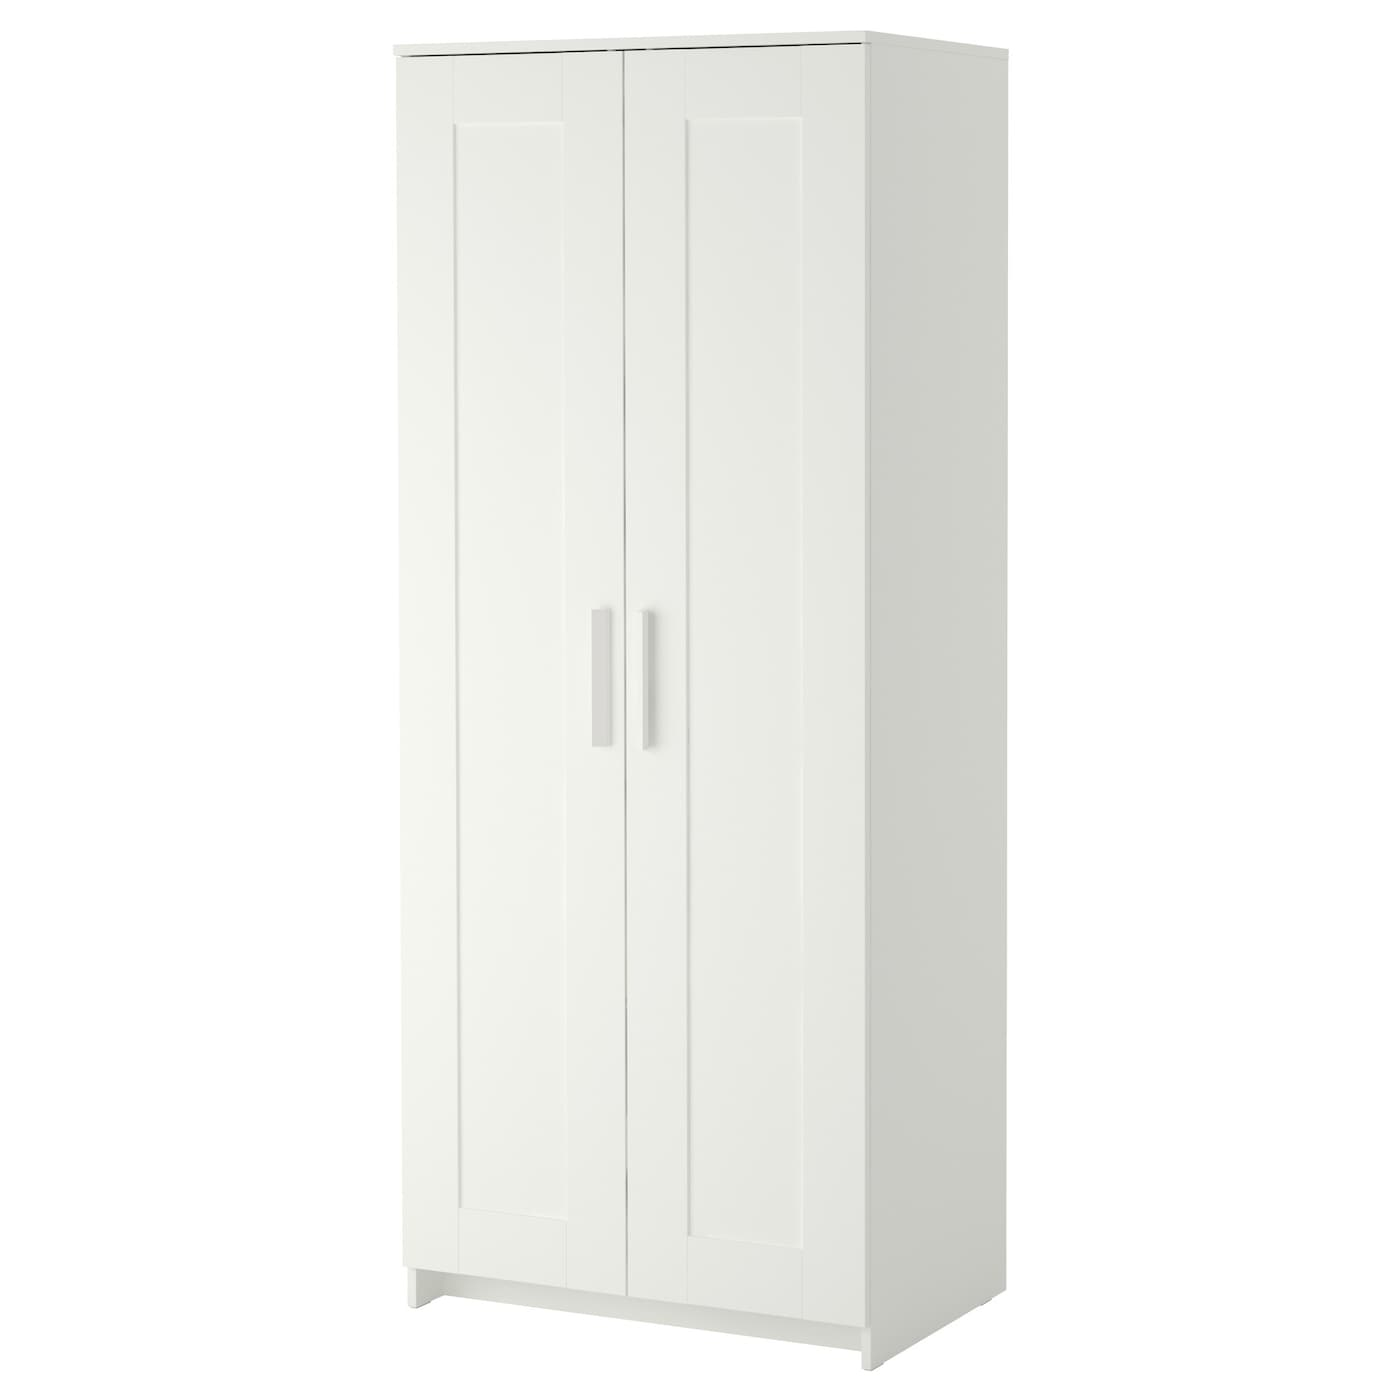 Brimnes wardrobe with 2 doors white 78x190 cm ikea - Ikea armoire porte coulissante ...